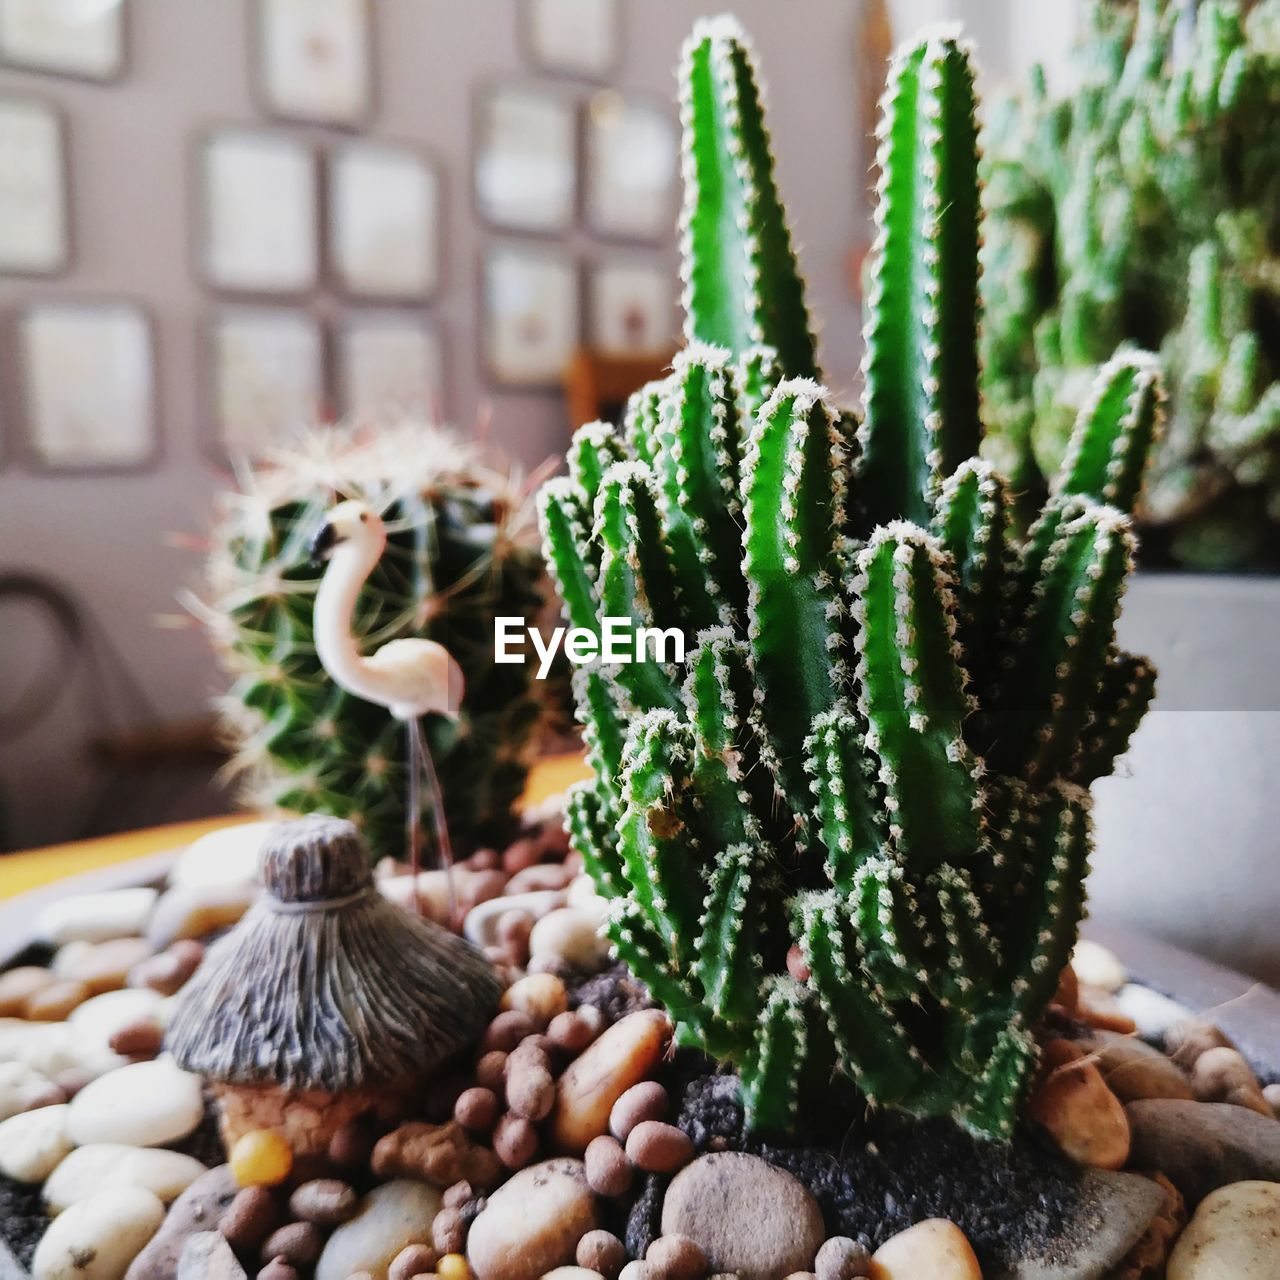 green color, succulent plant, no people, cactus, food, growth, close-up, indoors, freshness, food and drink, plant, potted plant, still life, selective focus, wellbeing, day, focus on foreground, healthy eating, large group of objects, nature